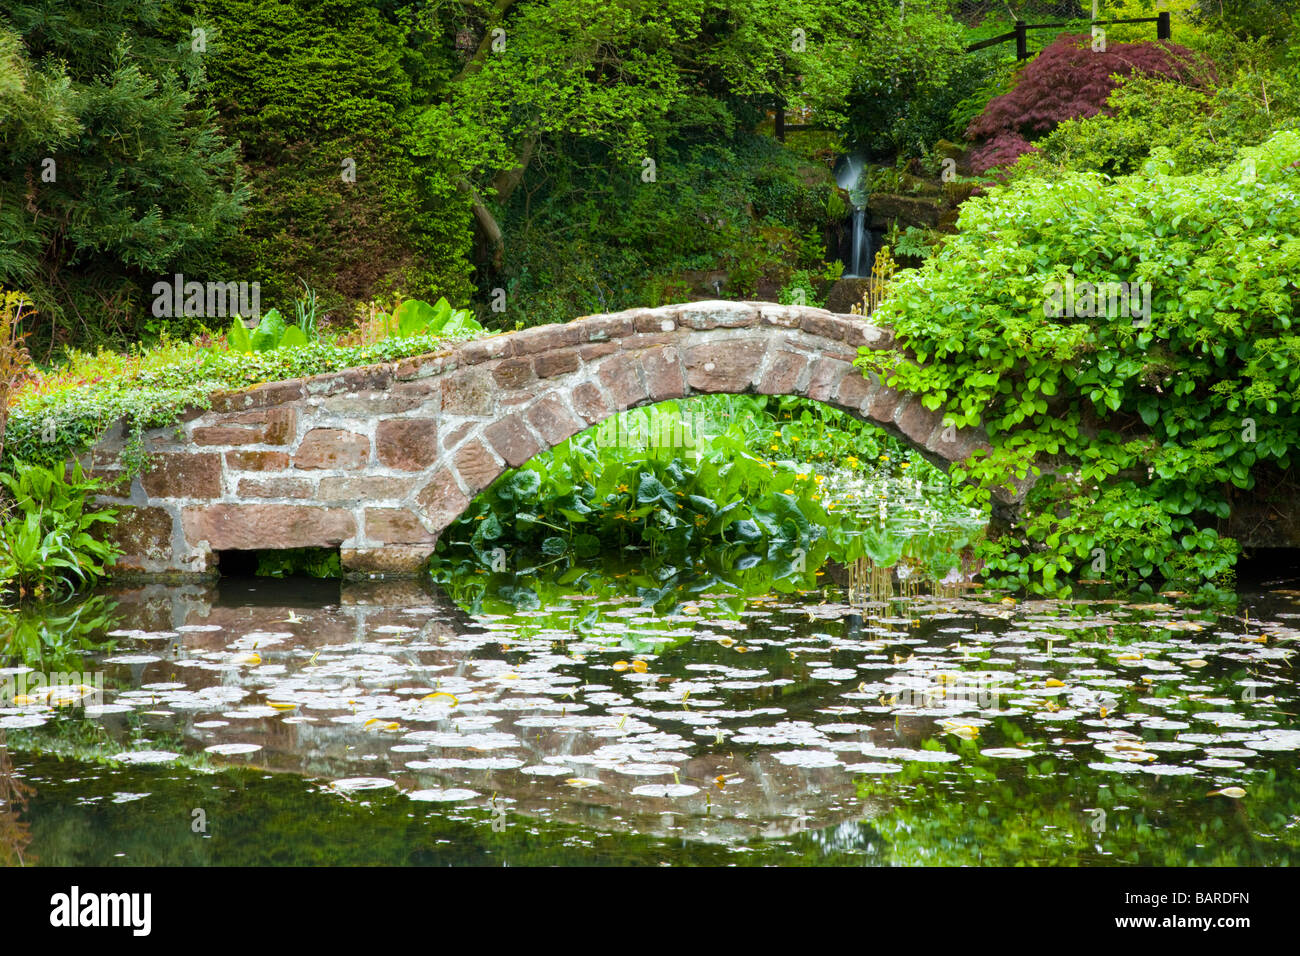 A stone garden bridge over a lily pond with japanese acer trees at Ness Botanical Gardens in Ness, Cheshire - Stock Image